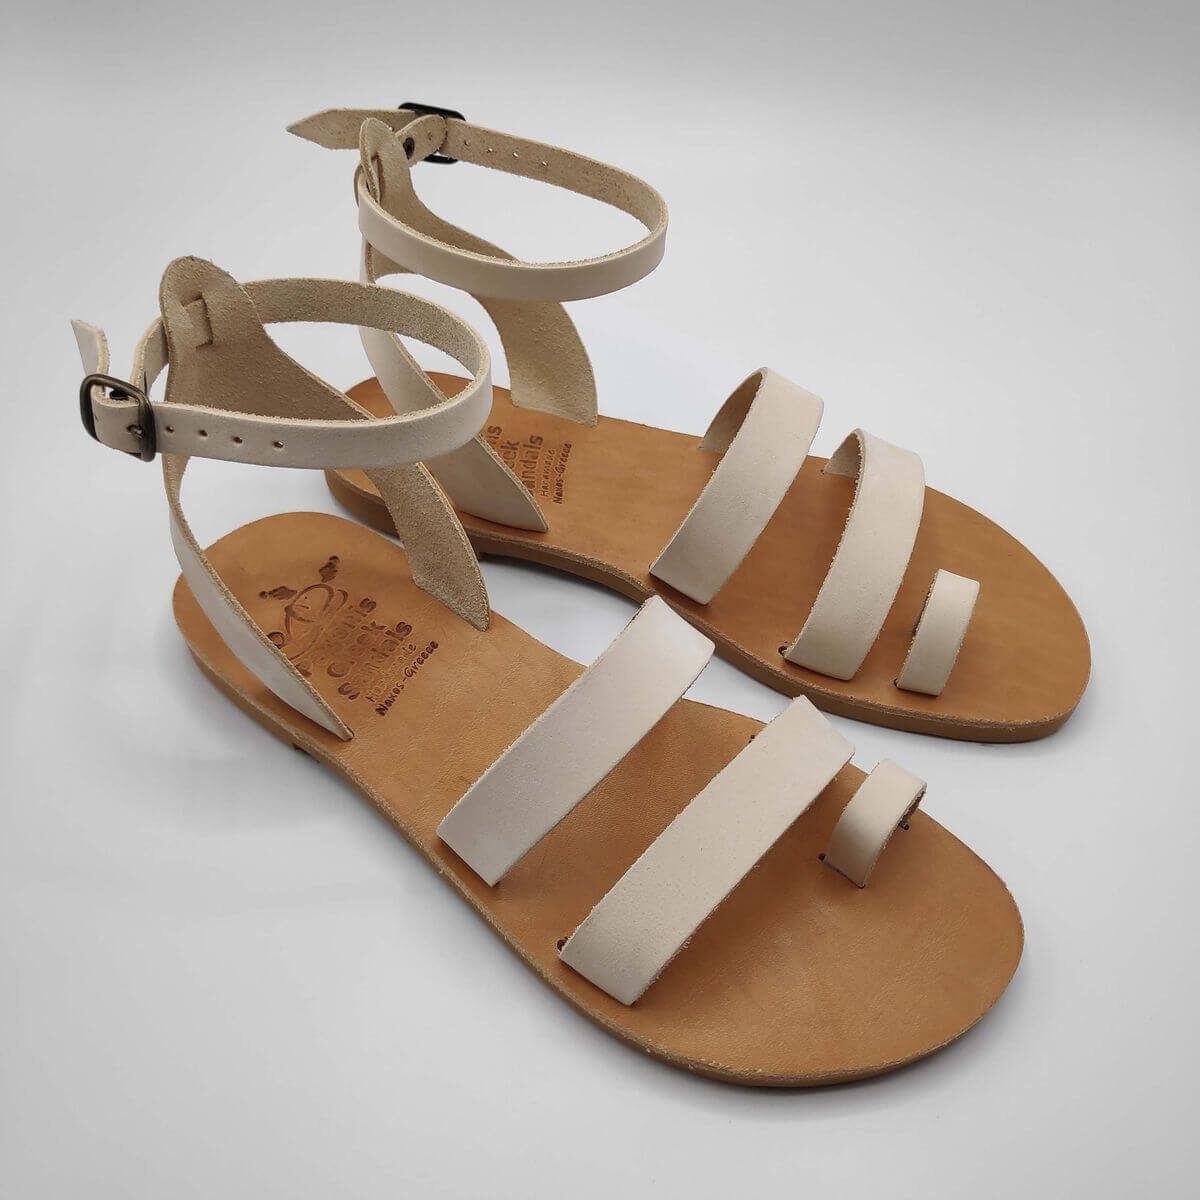 White nubuck leather dressy sandals with two straps, toe ring and high ankle strap, side view